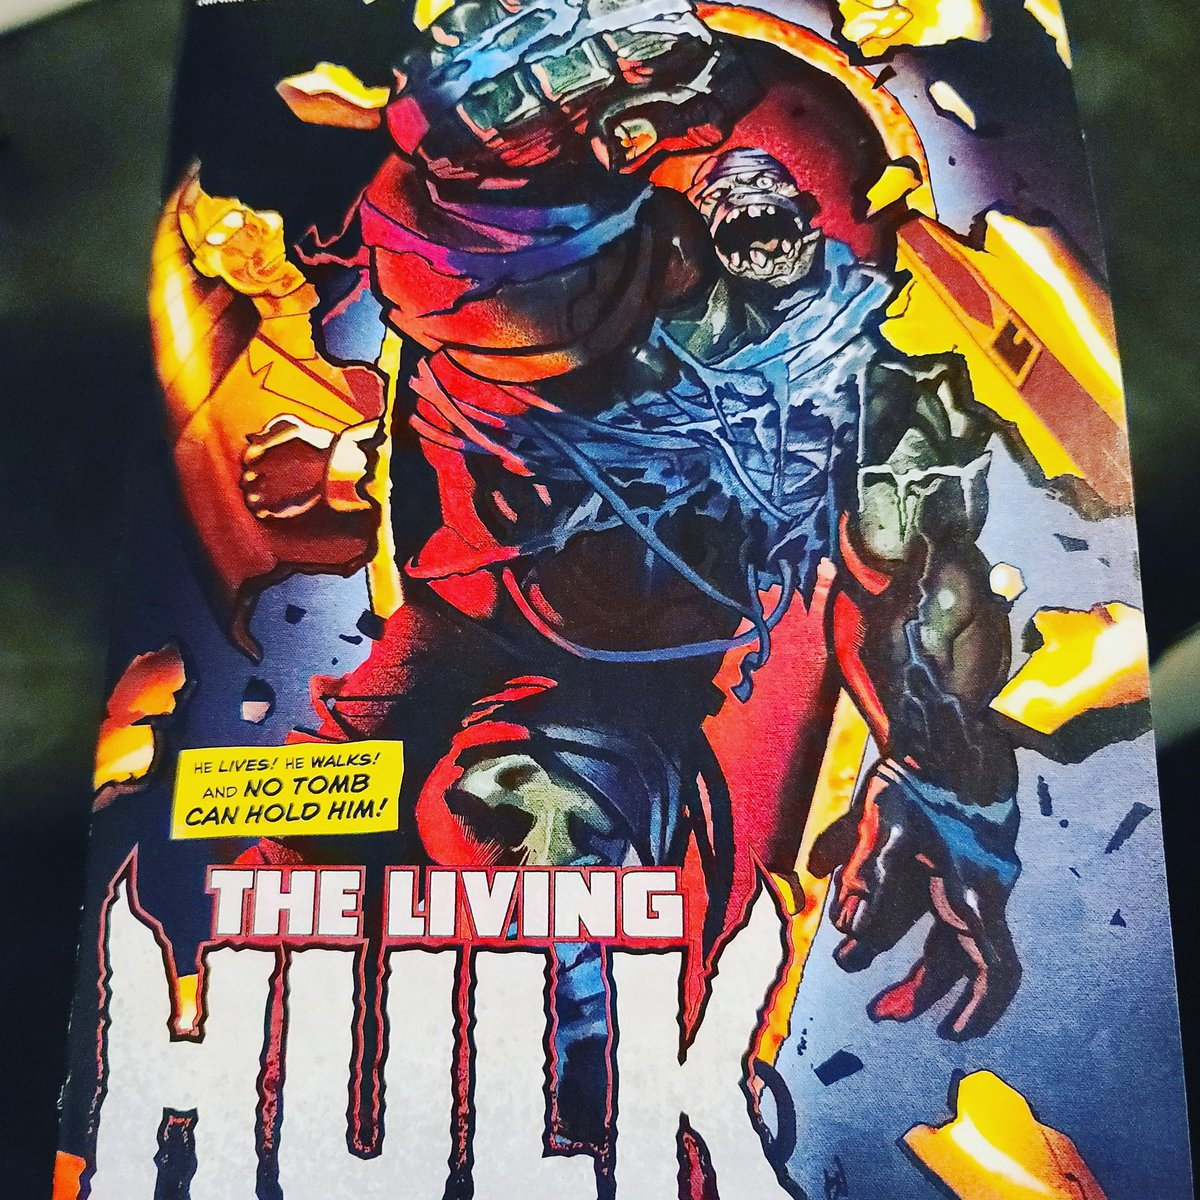 "Jesus' #coveroftheday is this Immortal Hulk #38 variant ""The Living Hulk"" by @DeadlyMike! Such a great cover!!  Immortal Hulk #38 is written by @Al_Ewing and interior art is crafted by @JoeBenn33636019. This book was released on October 14, 2020. https://t.co/PjIpDyJqtj"